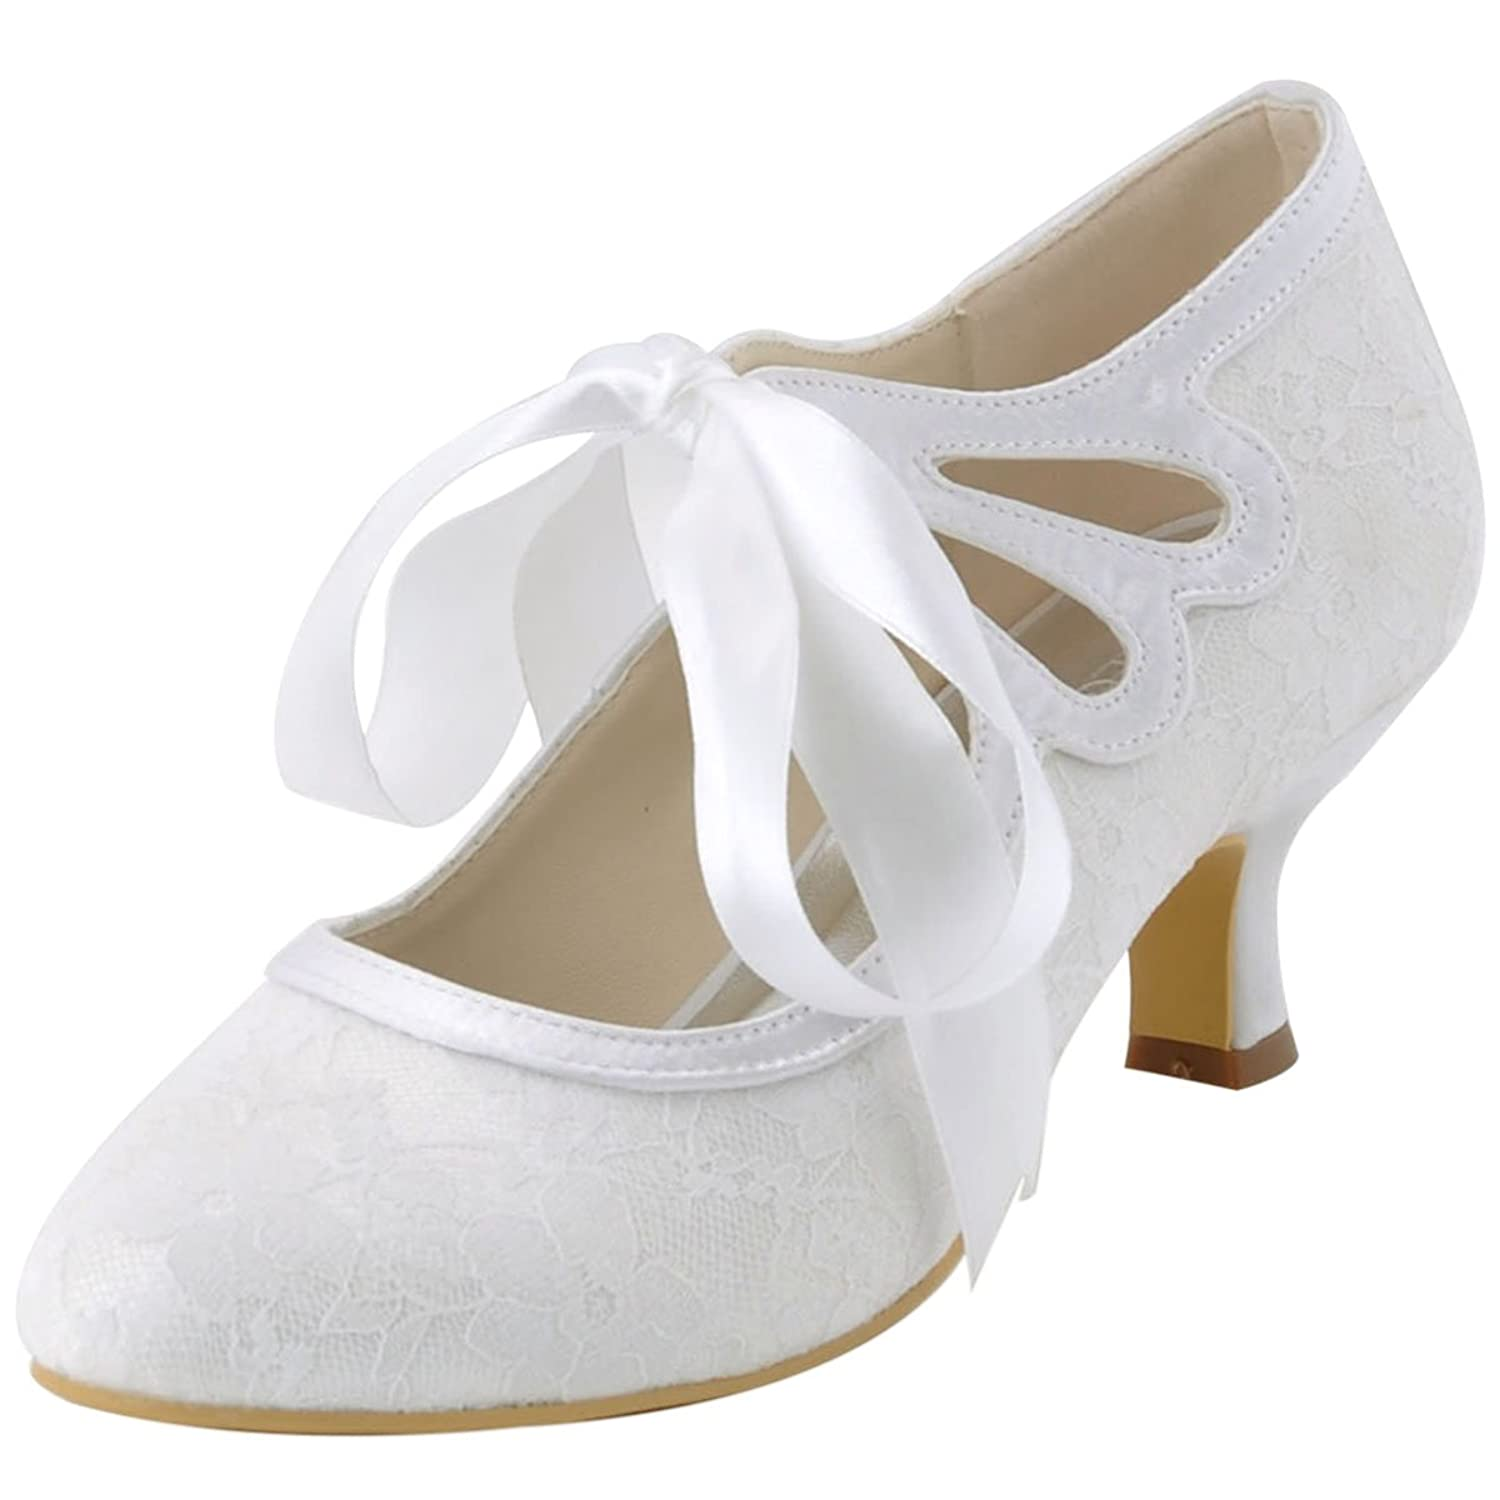 Vintage Style Wedding Shoes, Retro Inspired Shoes